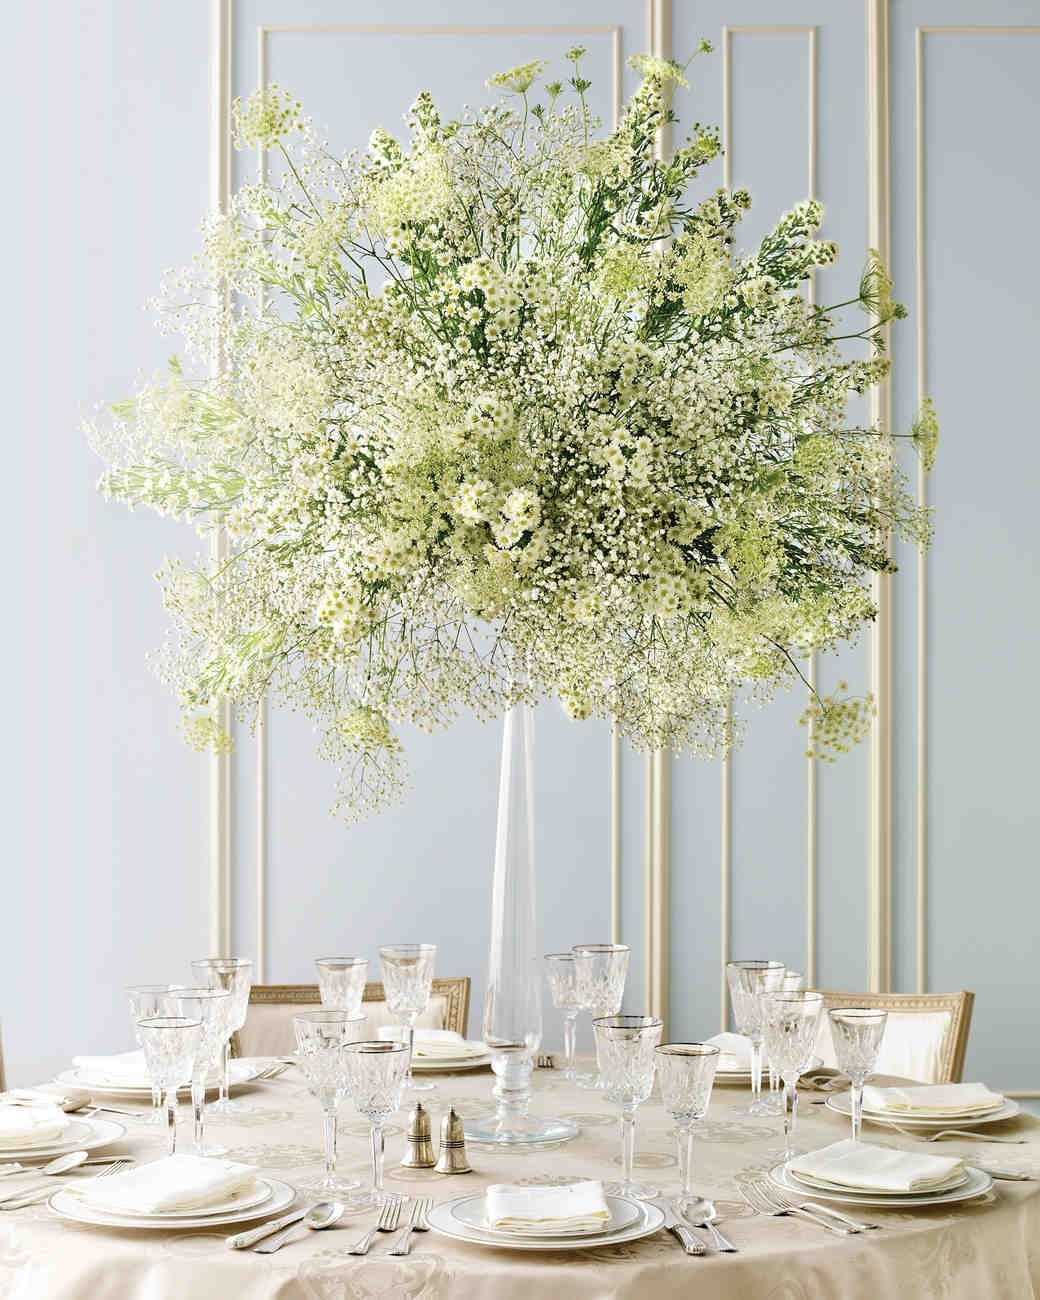 Event Decorating on a Budget | Martha stewart weddings, Centerpieces ...